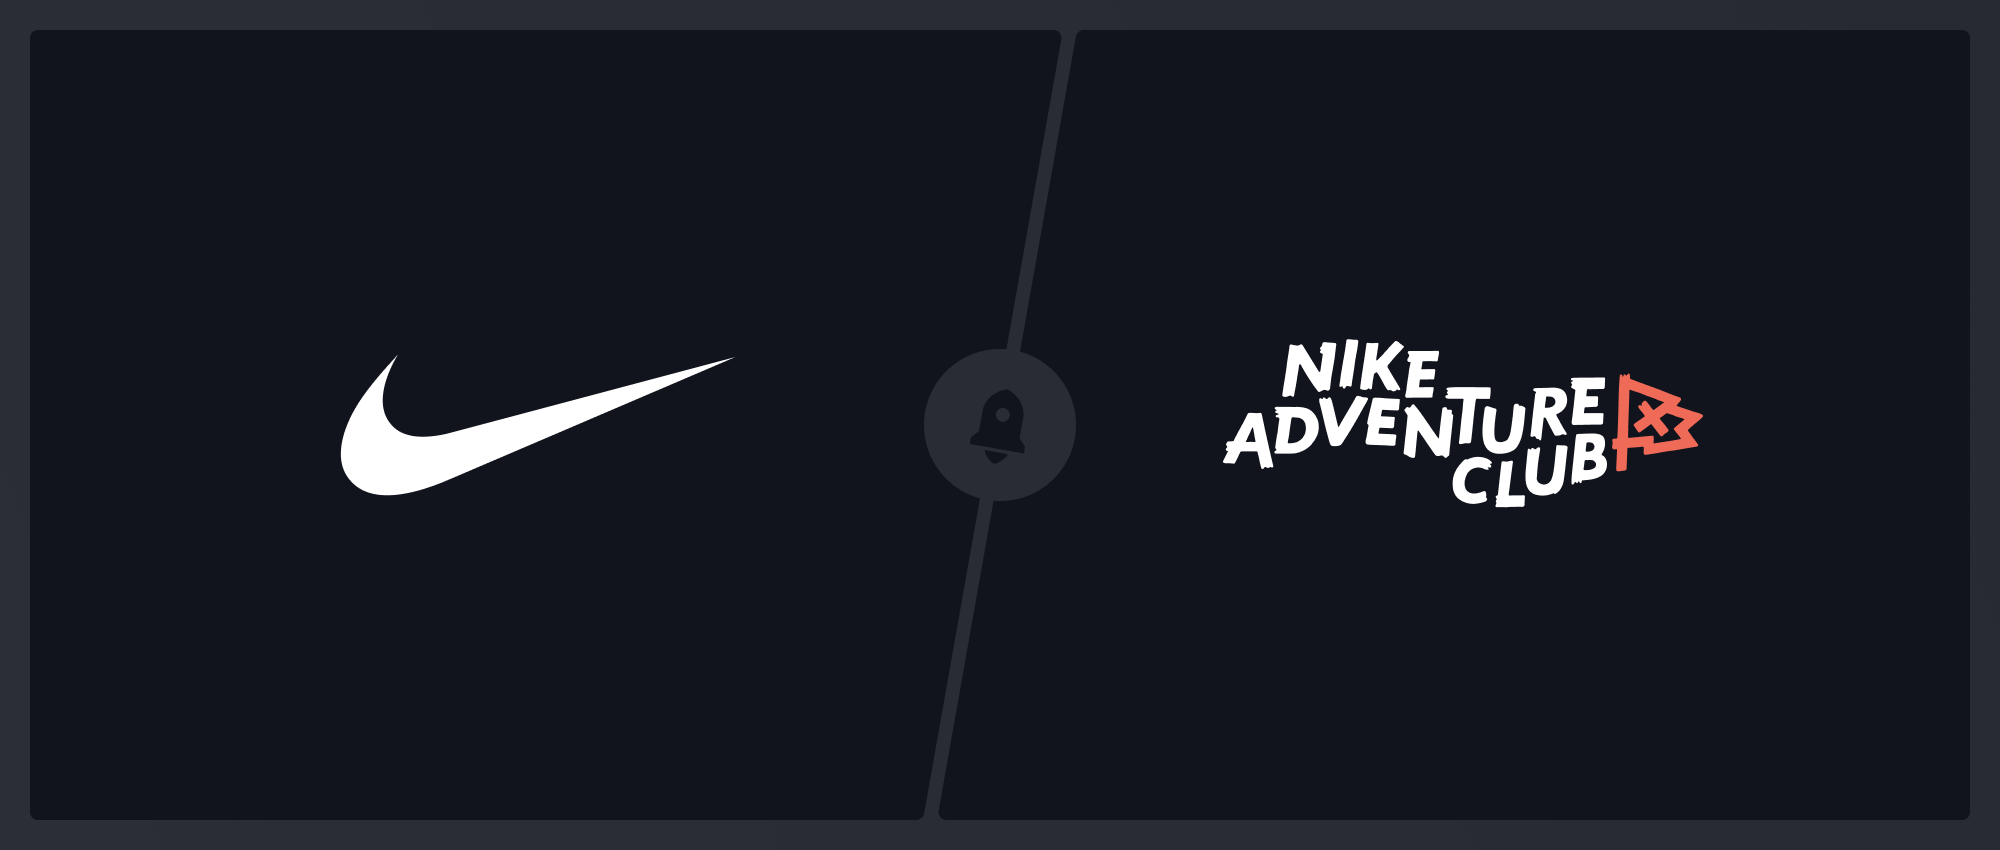 Nike Adventure Club: How to validate and scale a new subscription service with style.